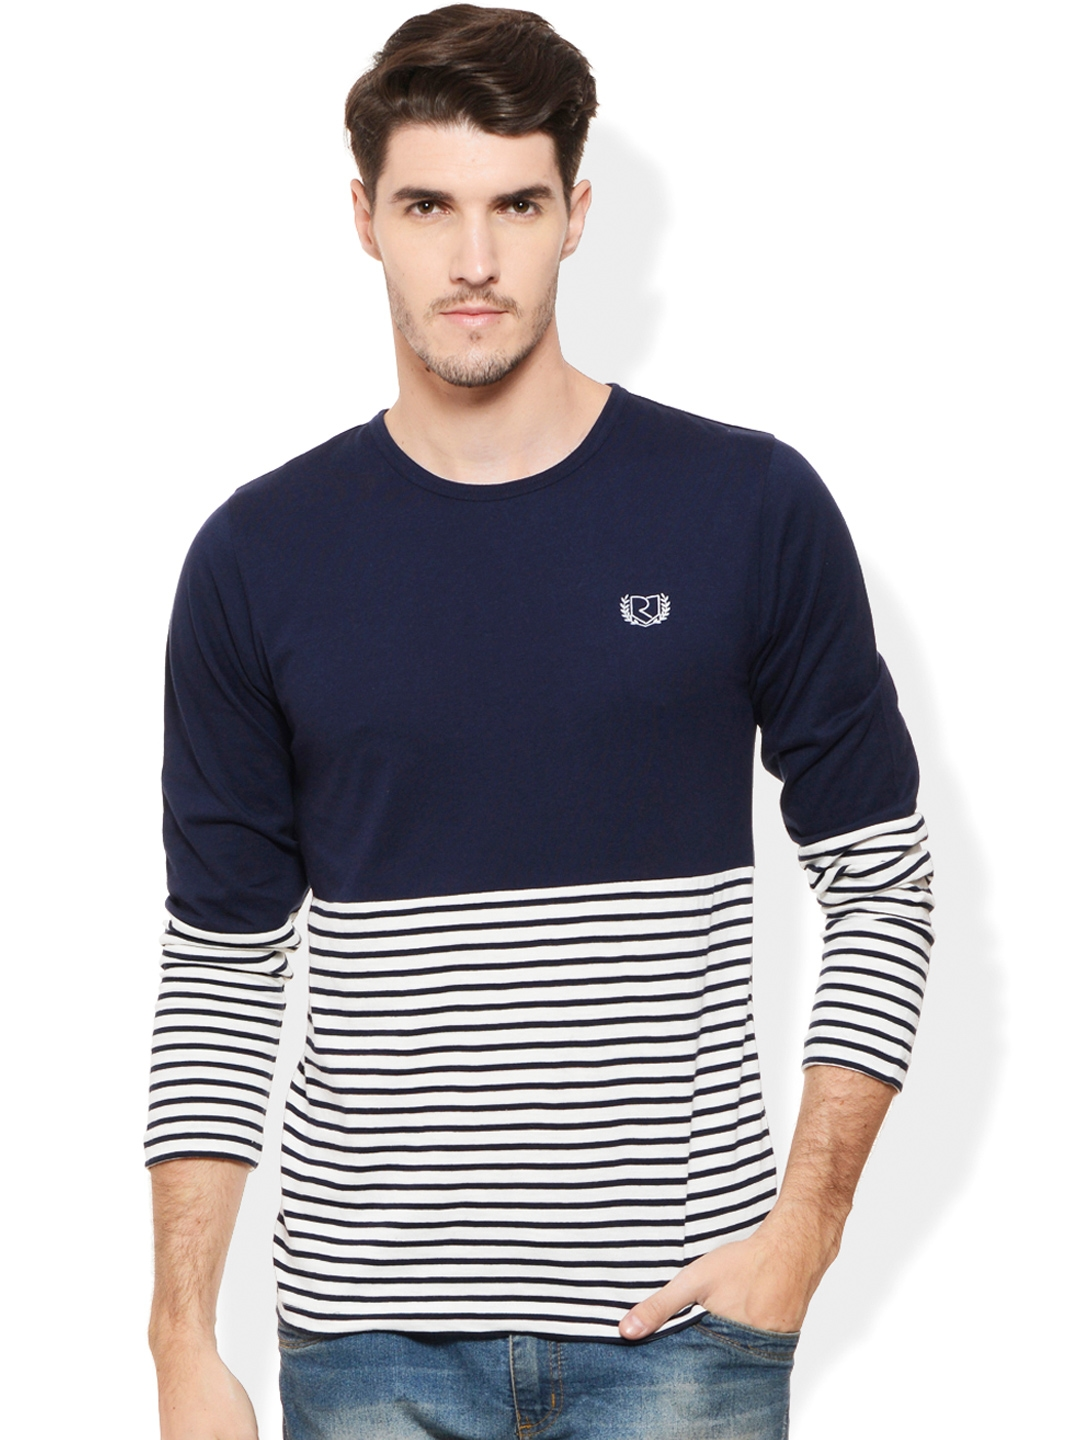 18fa092d441 Buy Rigo Navy   White Striped Smart Fit T Shirt - Tshirts for Men 1484688